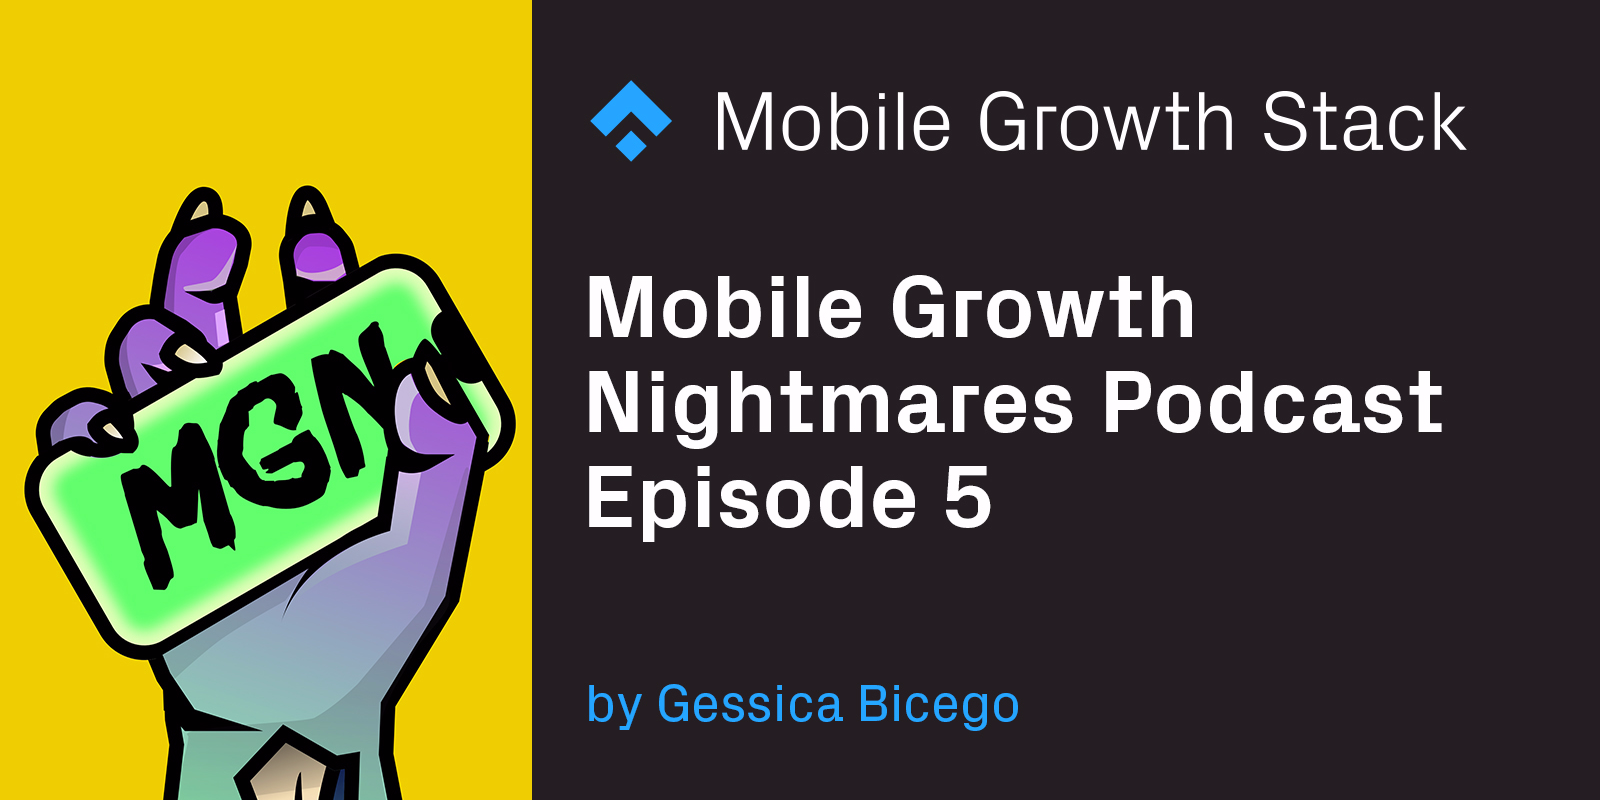 Mobile Growth Nightmares Episode 5— Lisa Kennelly from Fishbrain